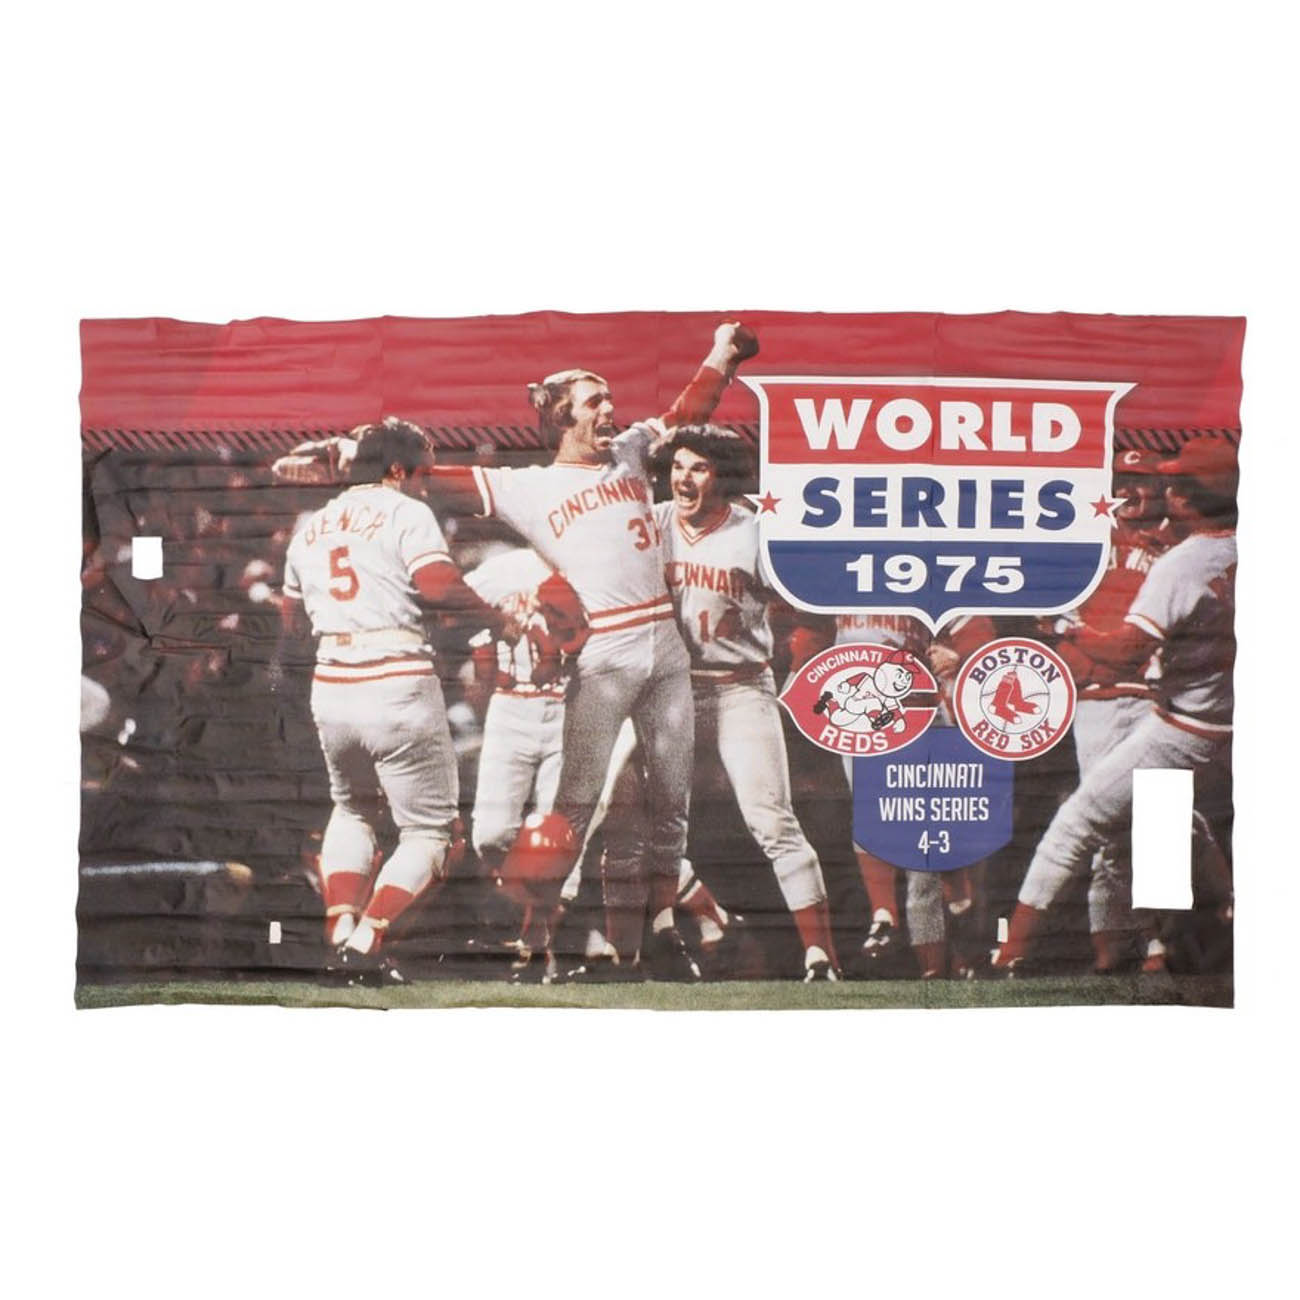 A 1975 World Series four-piece banner / Image courtesy of Everything But The House (EBTH) // Published: 12.6.18